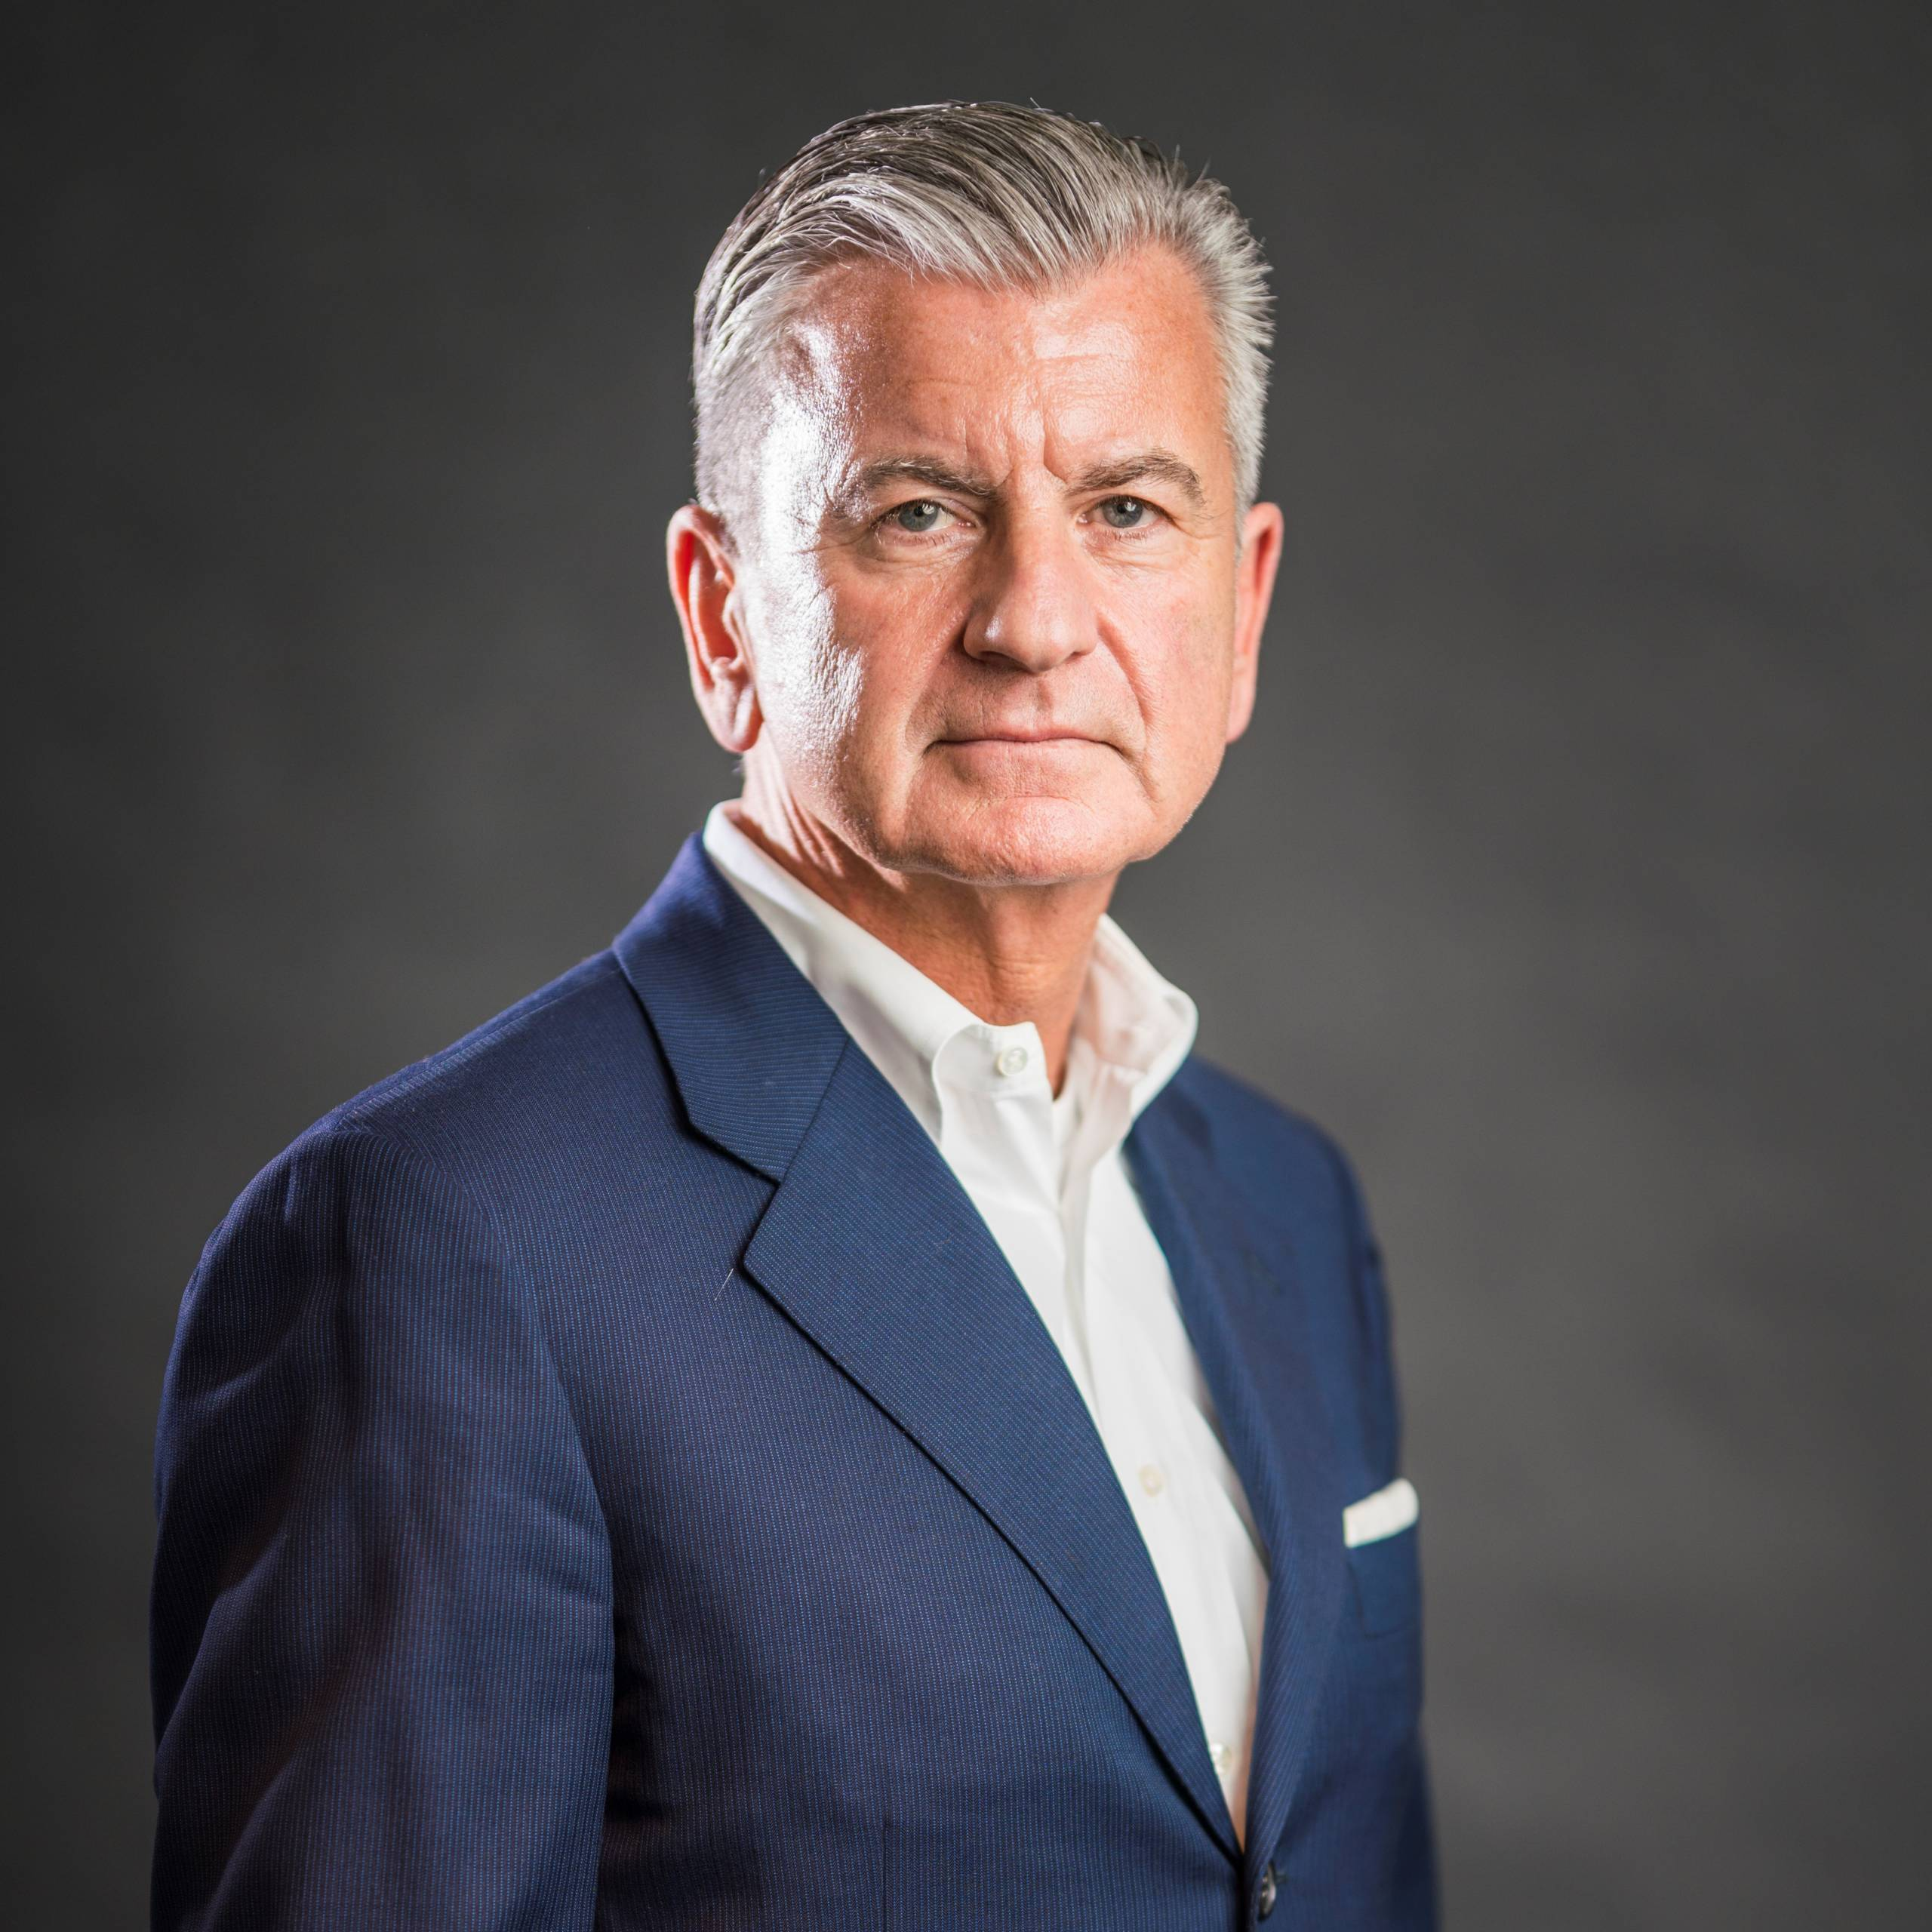 Kündig Group: Vice Chairman / Group CEO